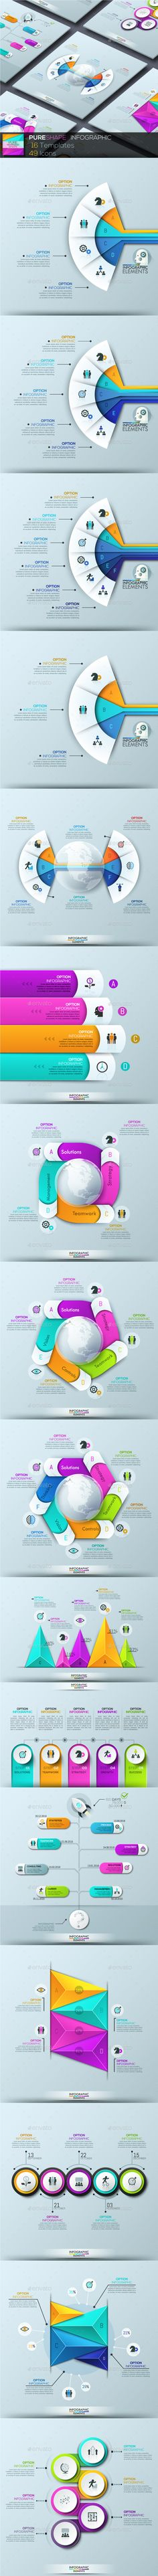 Pure Shape Infographic Template PSD, Vector EPS, AI Illustrator